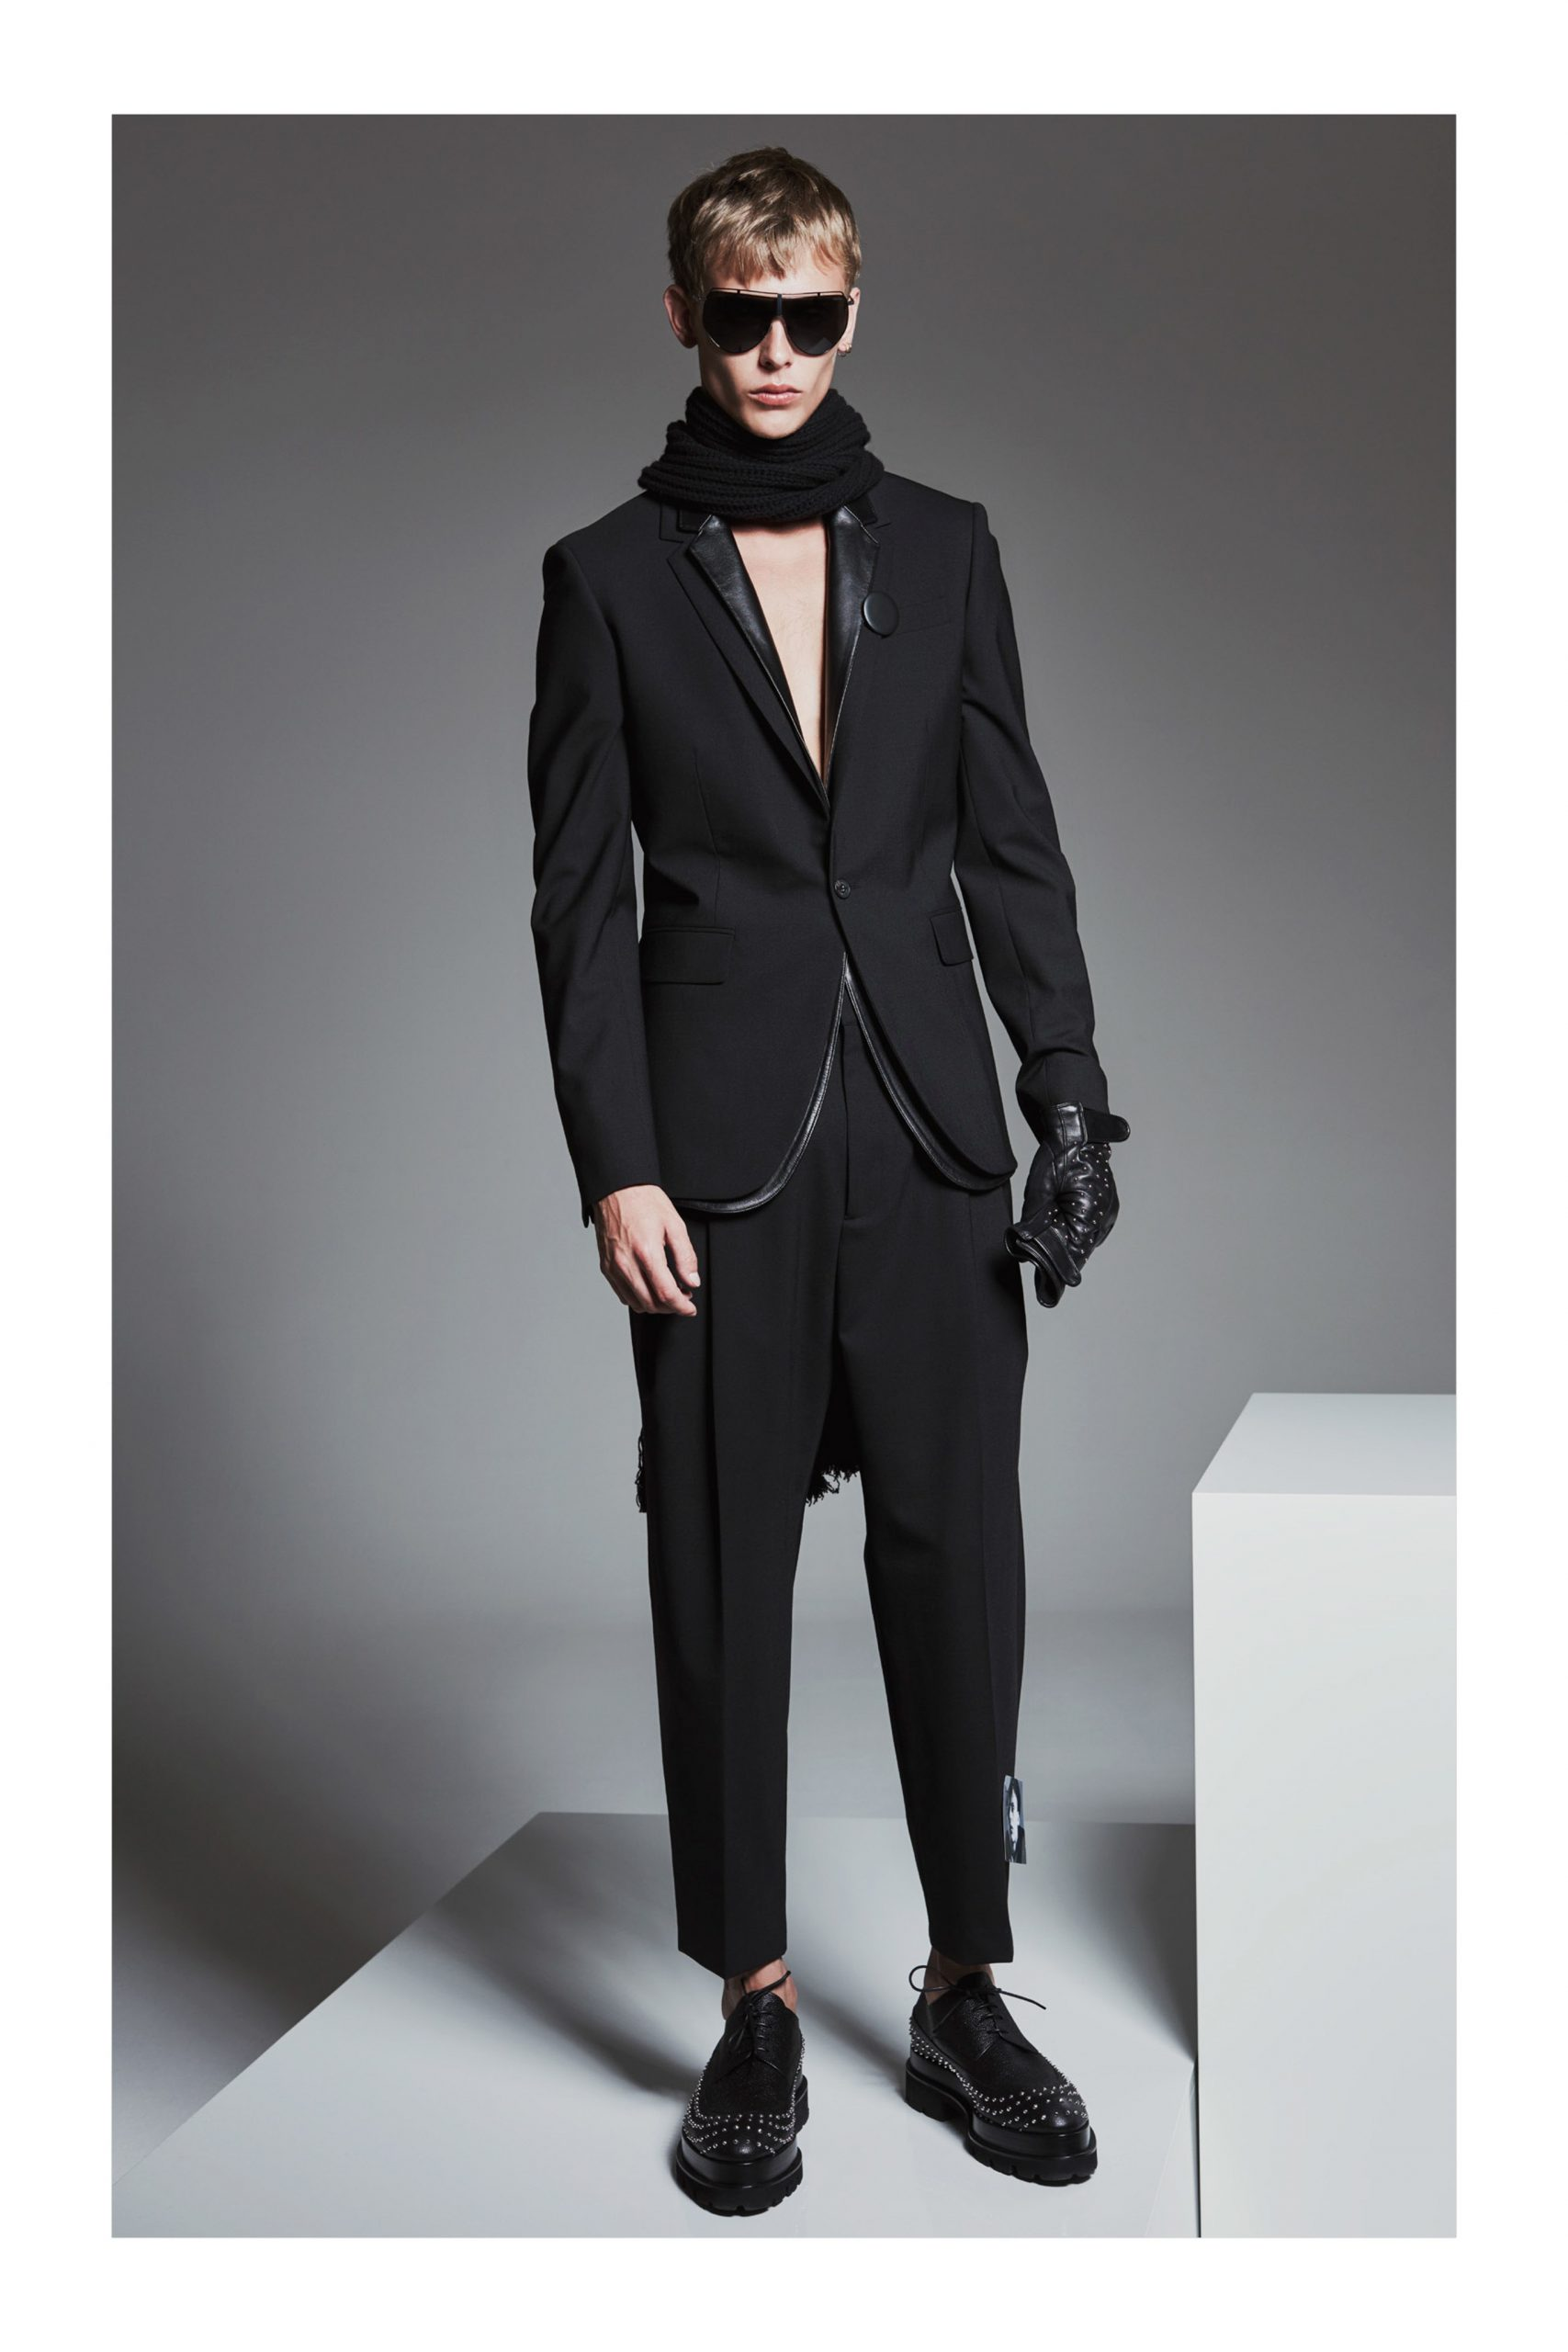 Les Hommes Pre-Fall 2020 Men's Fashion Collection pictures